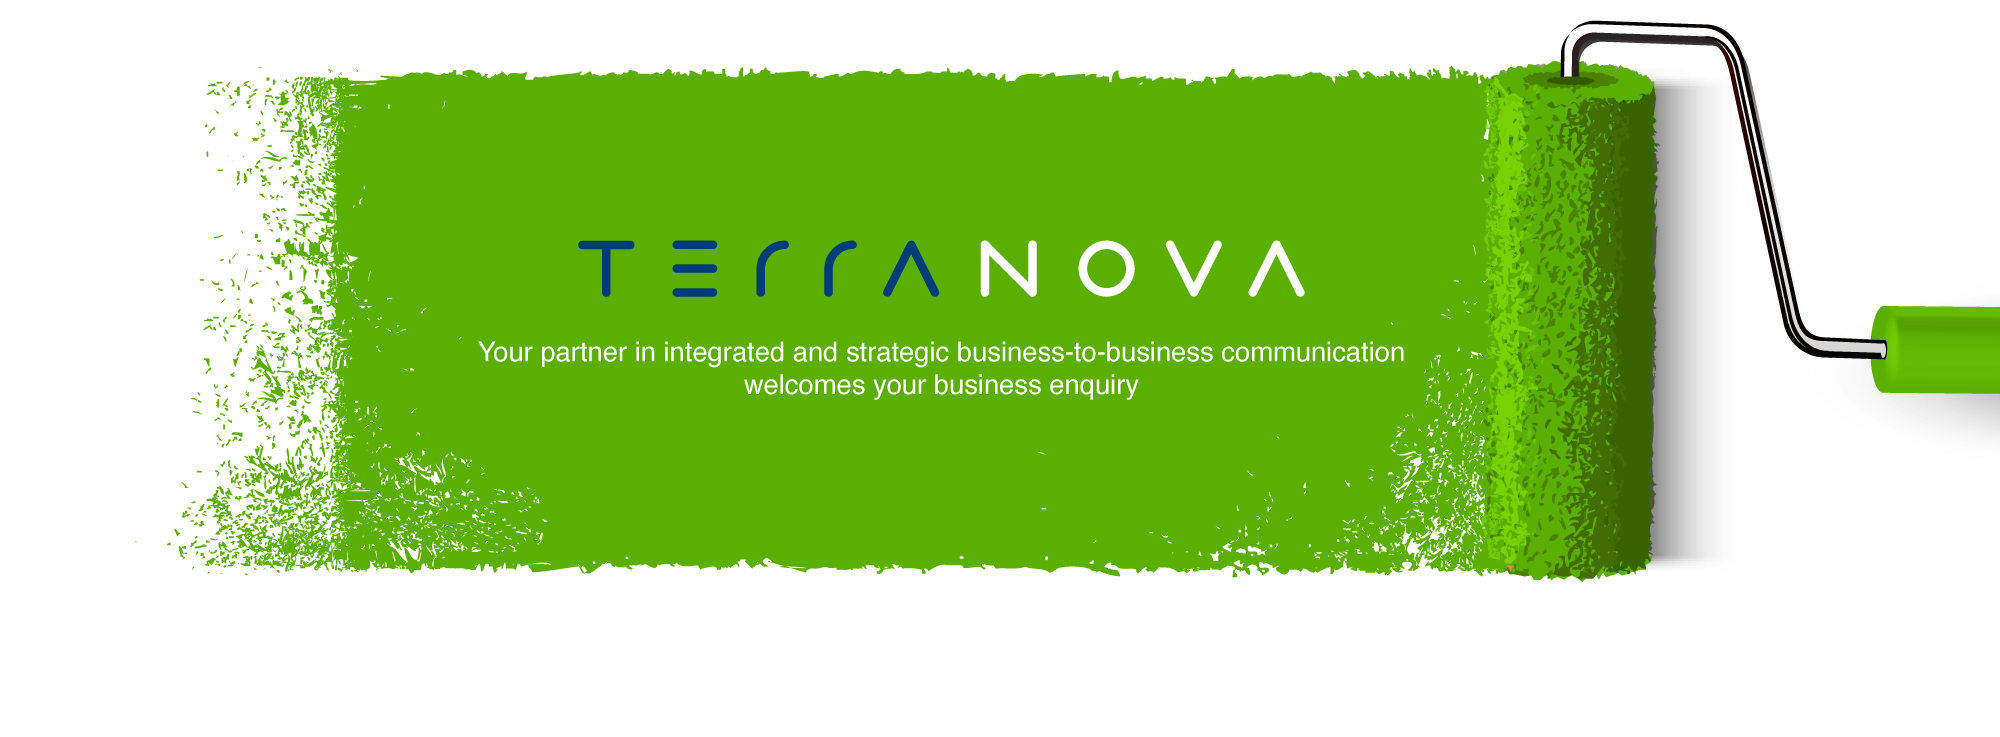 TERRANOVA Your partner in integrated and strategic business - to - business communication Welcomes your business enquiry